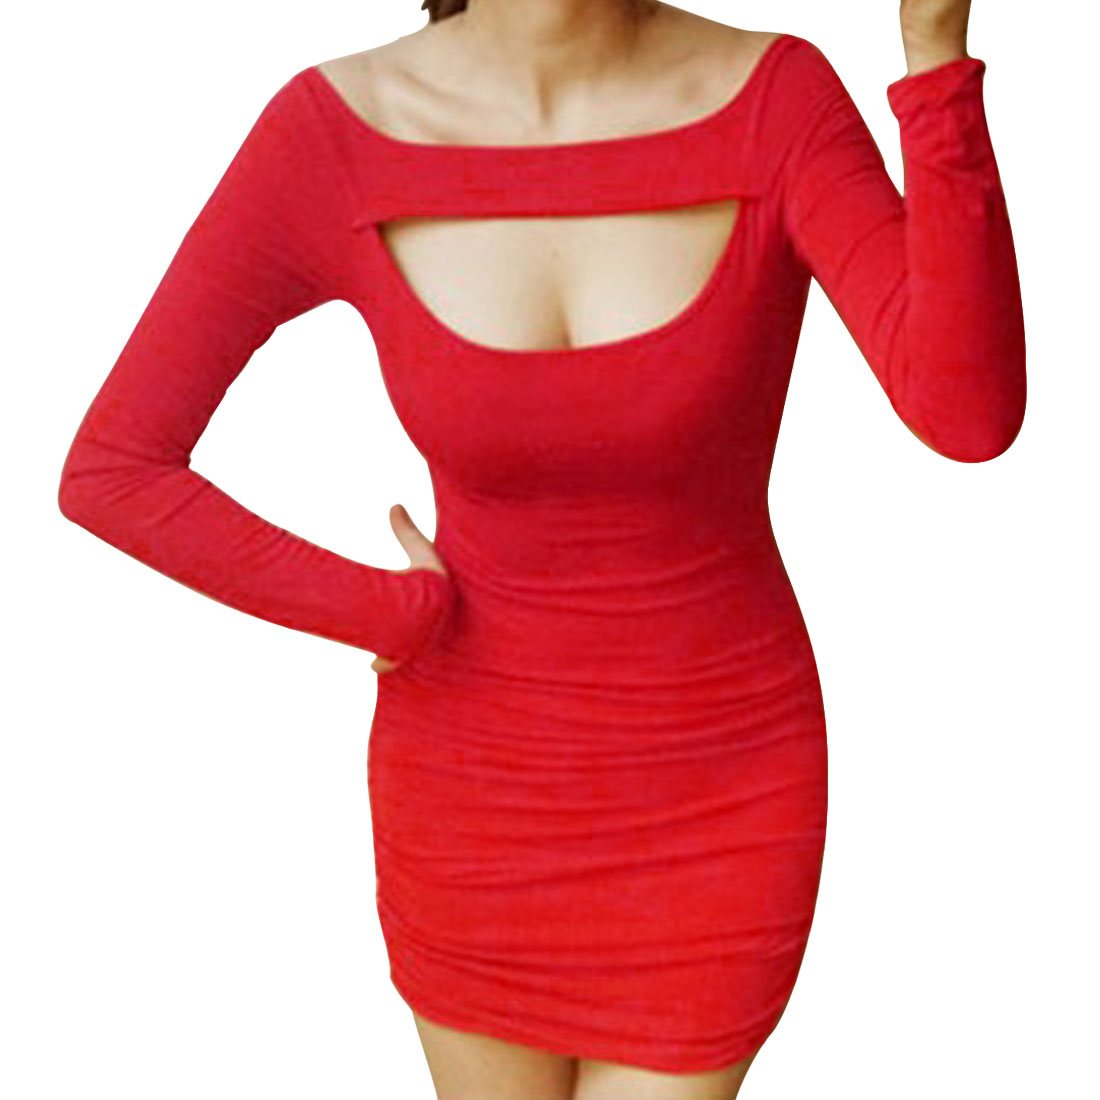 Lady Sexy Boat Neck Long-sleeved Stretchy Cut Out Red Dress XS